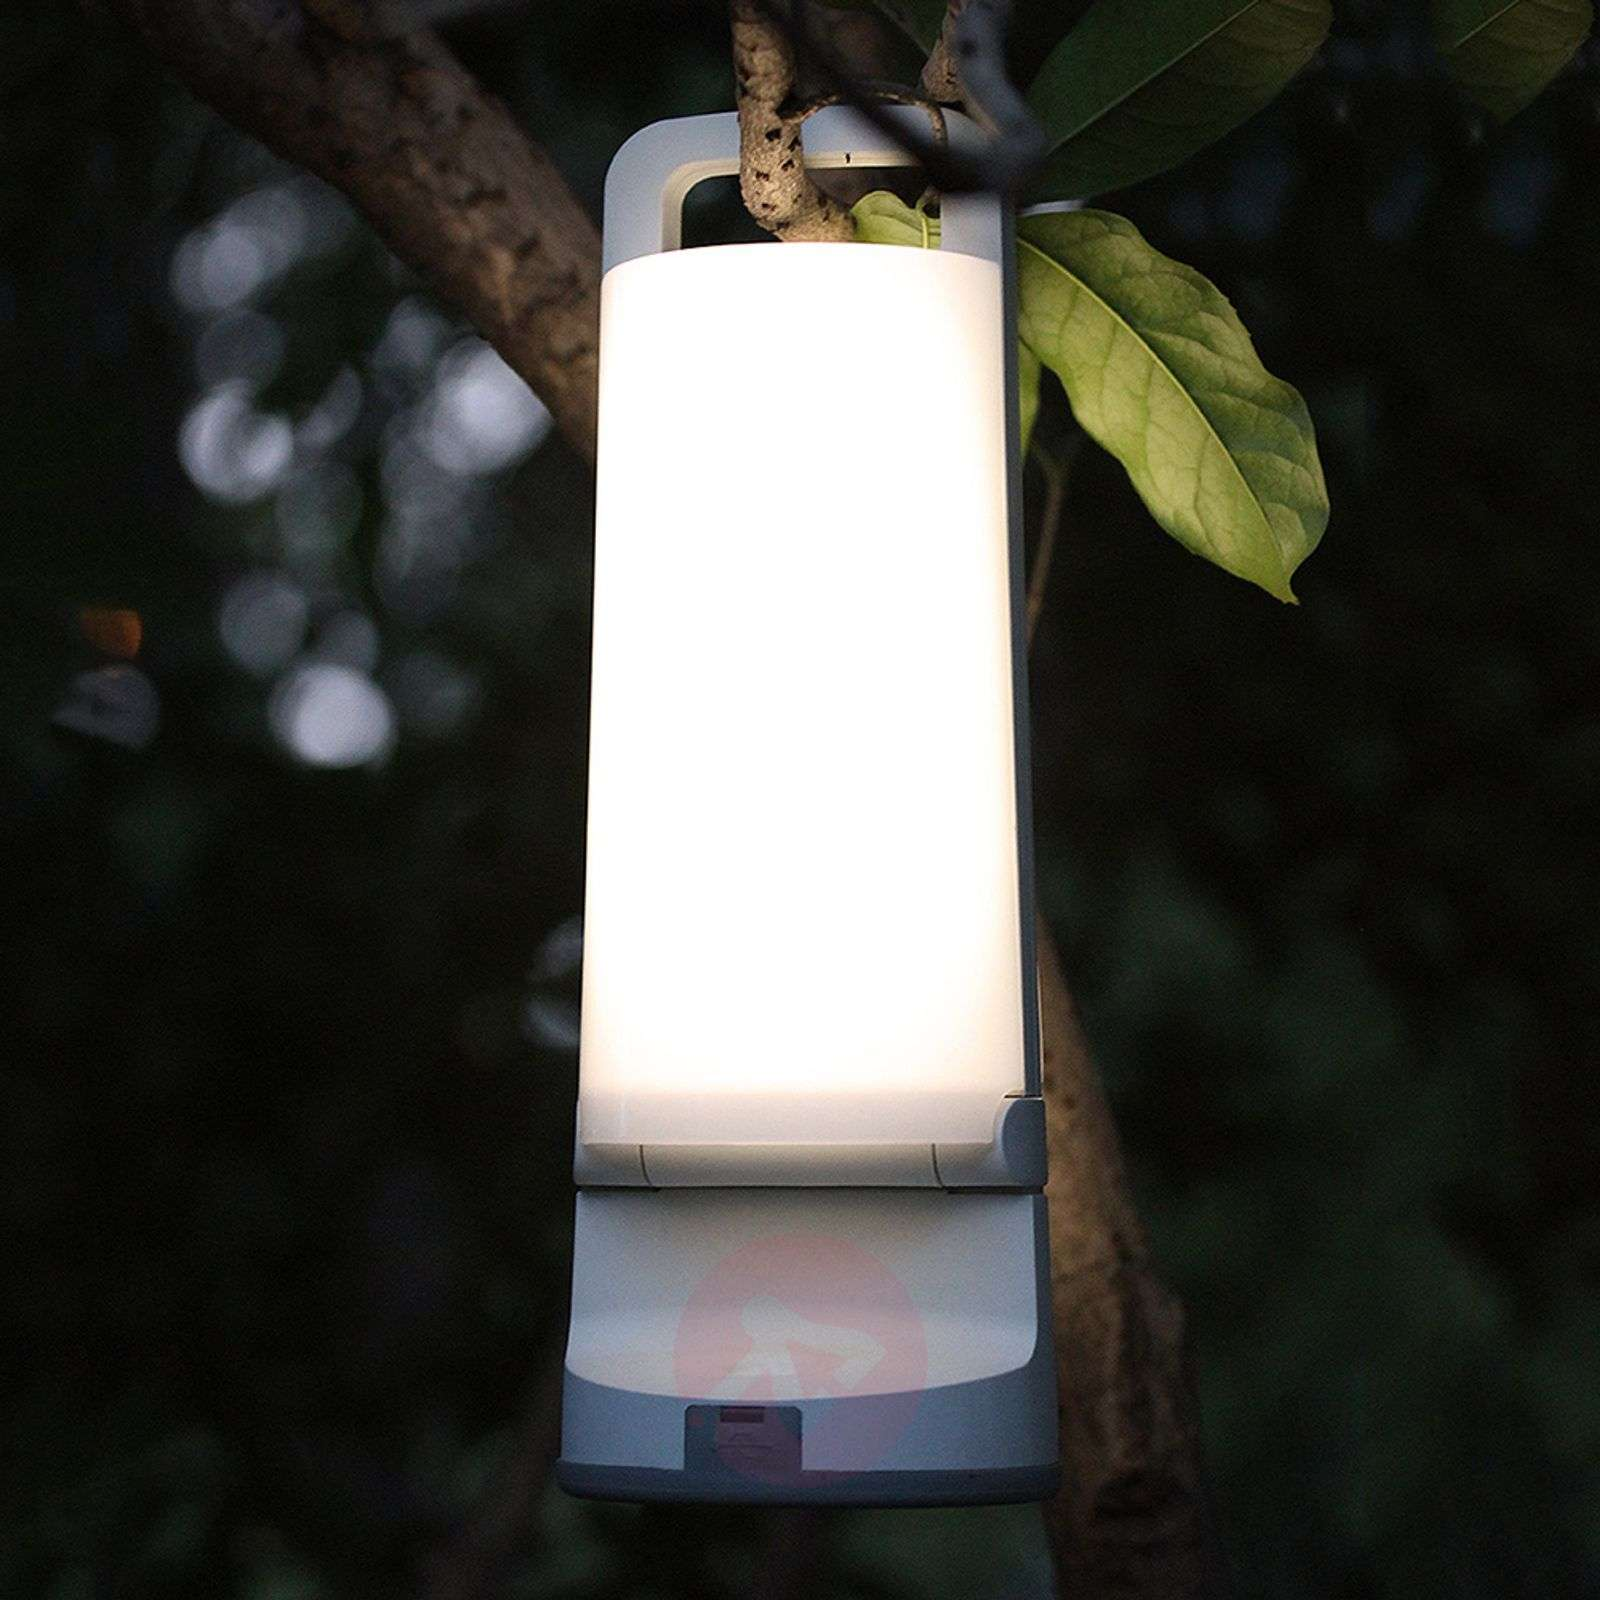 ... Dragonfly A Solar Table Lamp For Outdoors 3006242 01 ...